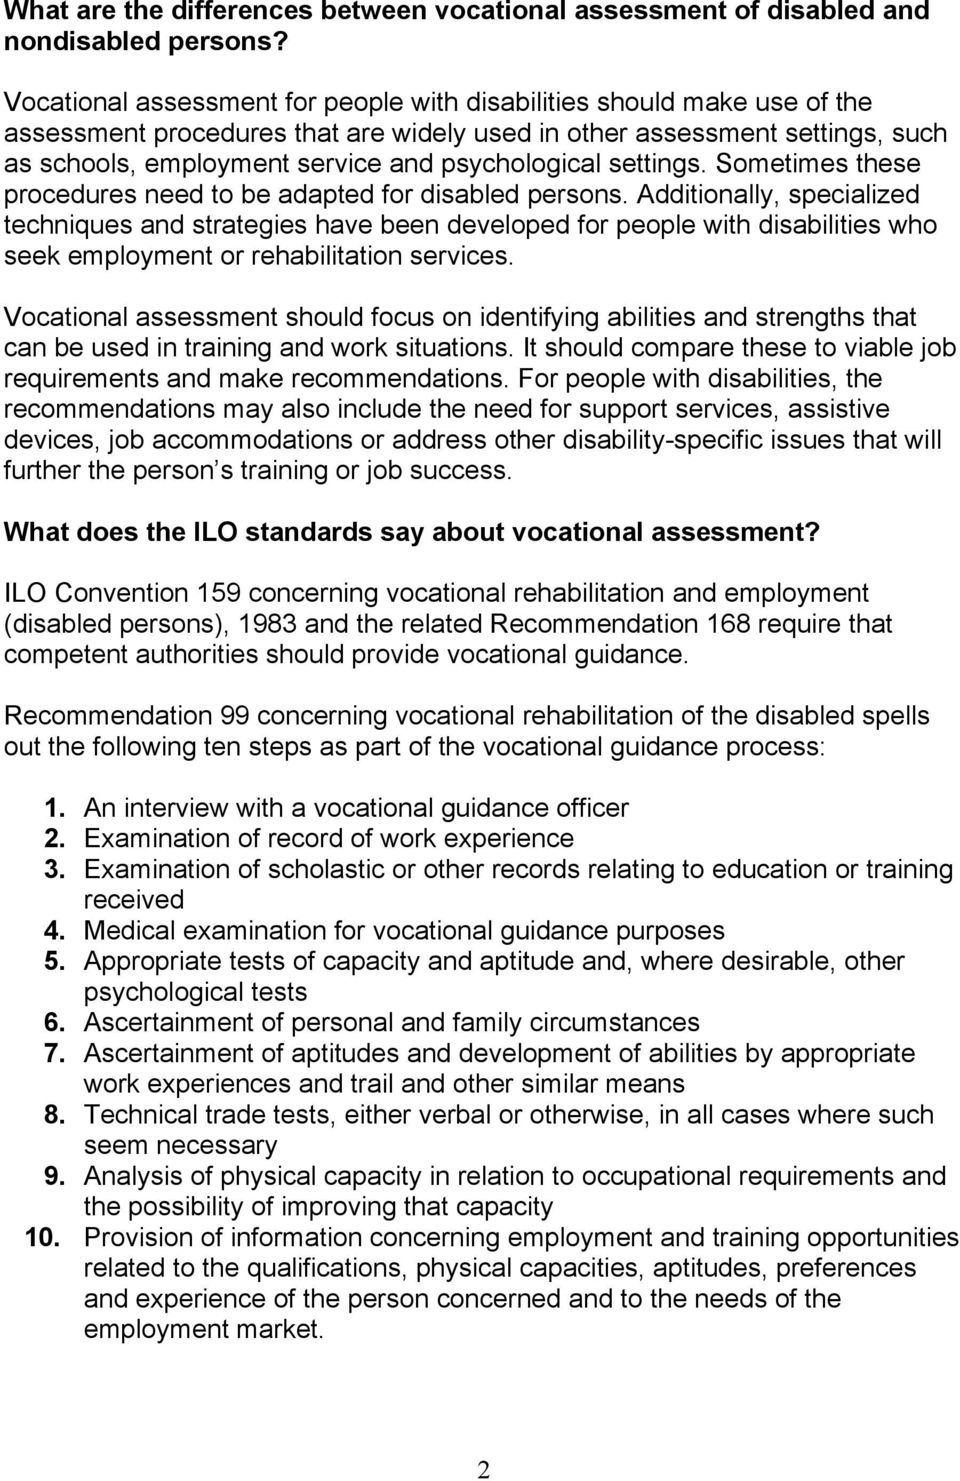 psychological settings. Sometimes these procedures need to be adapted for disabled persons.